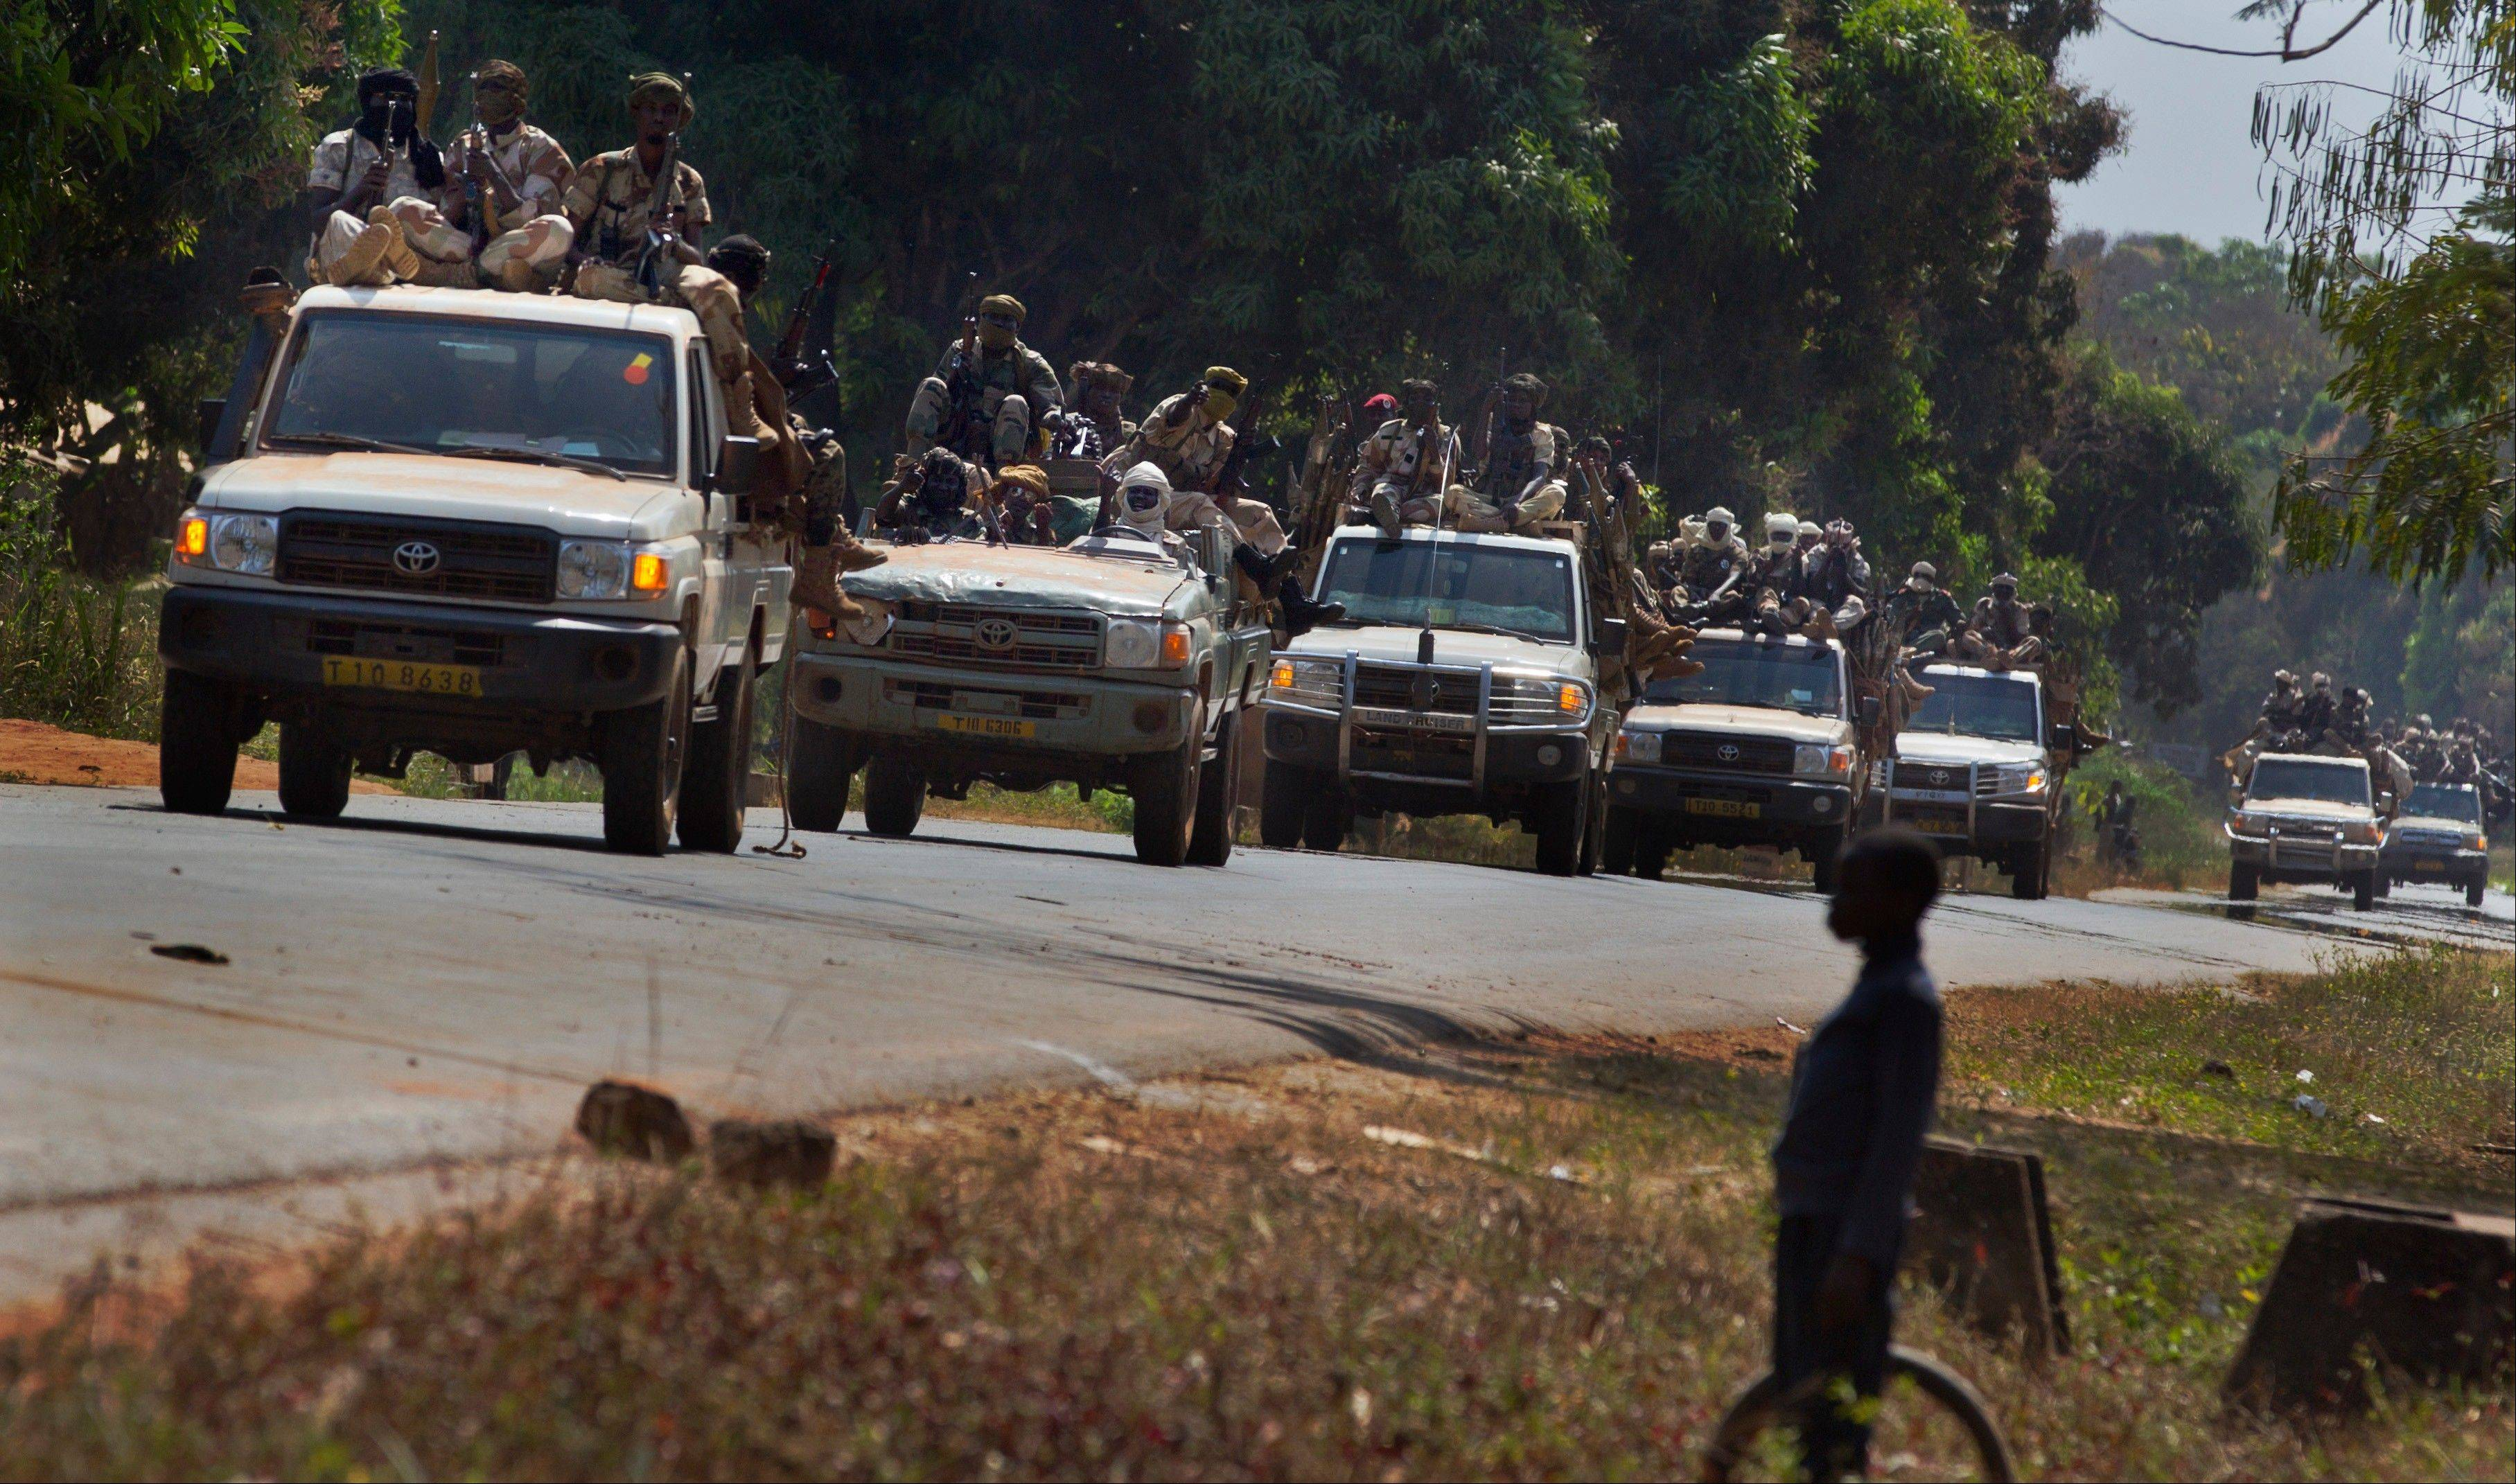 A convoy of Chadian soldiers fighting in support of Central African Republic president Francois Bozize moves along the road in Damara last January. On Friday, rebels took the town and began a new march to take the capital, Bangui.